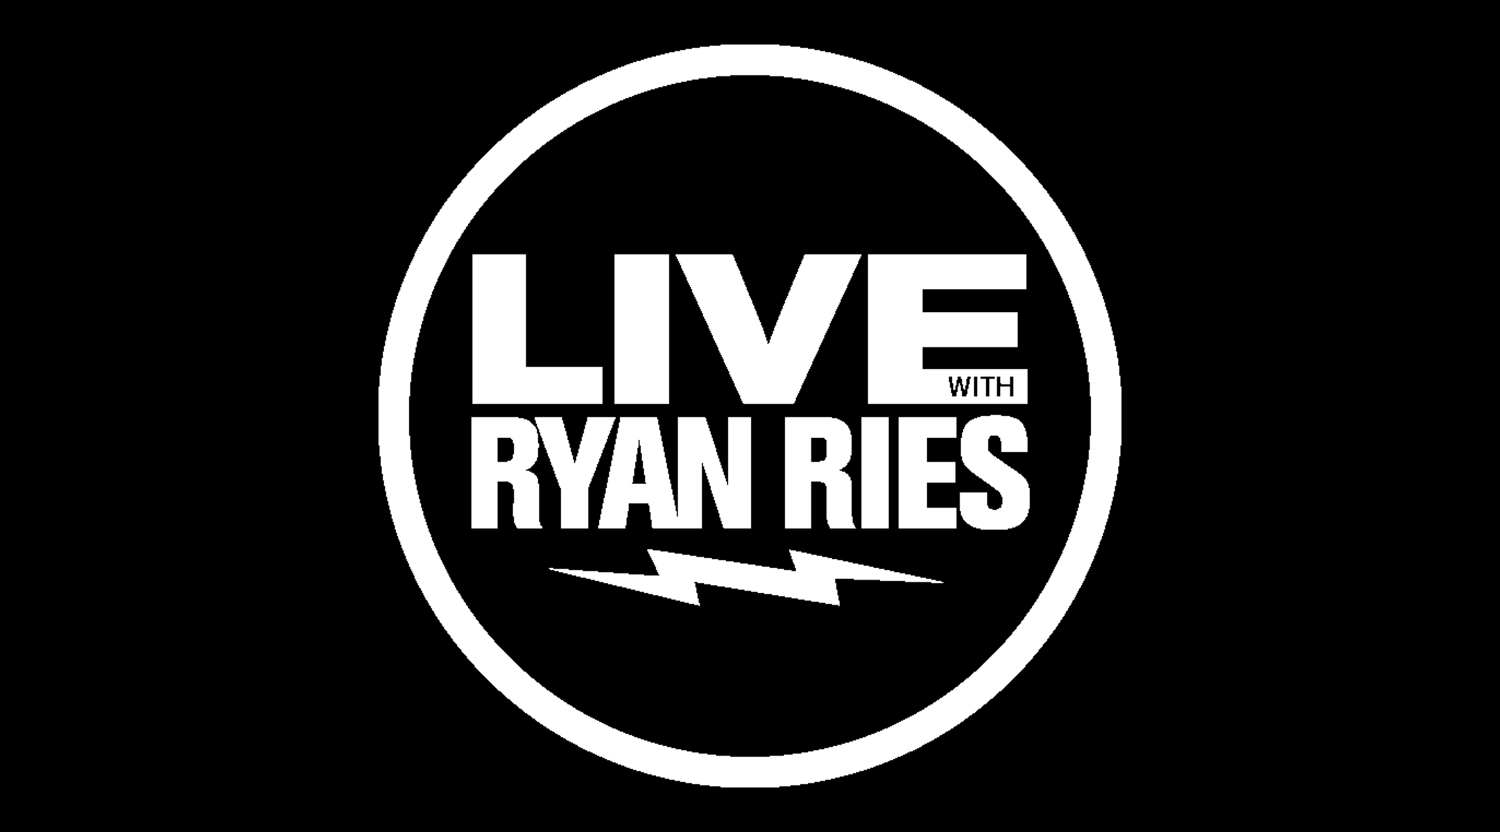 Live with Ryan Ries    |   April 20th 2019